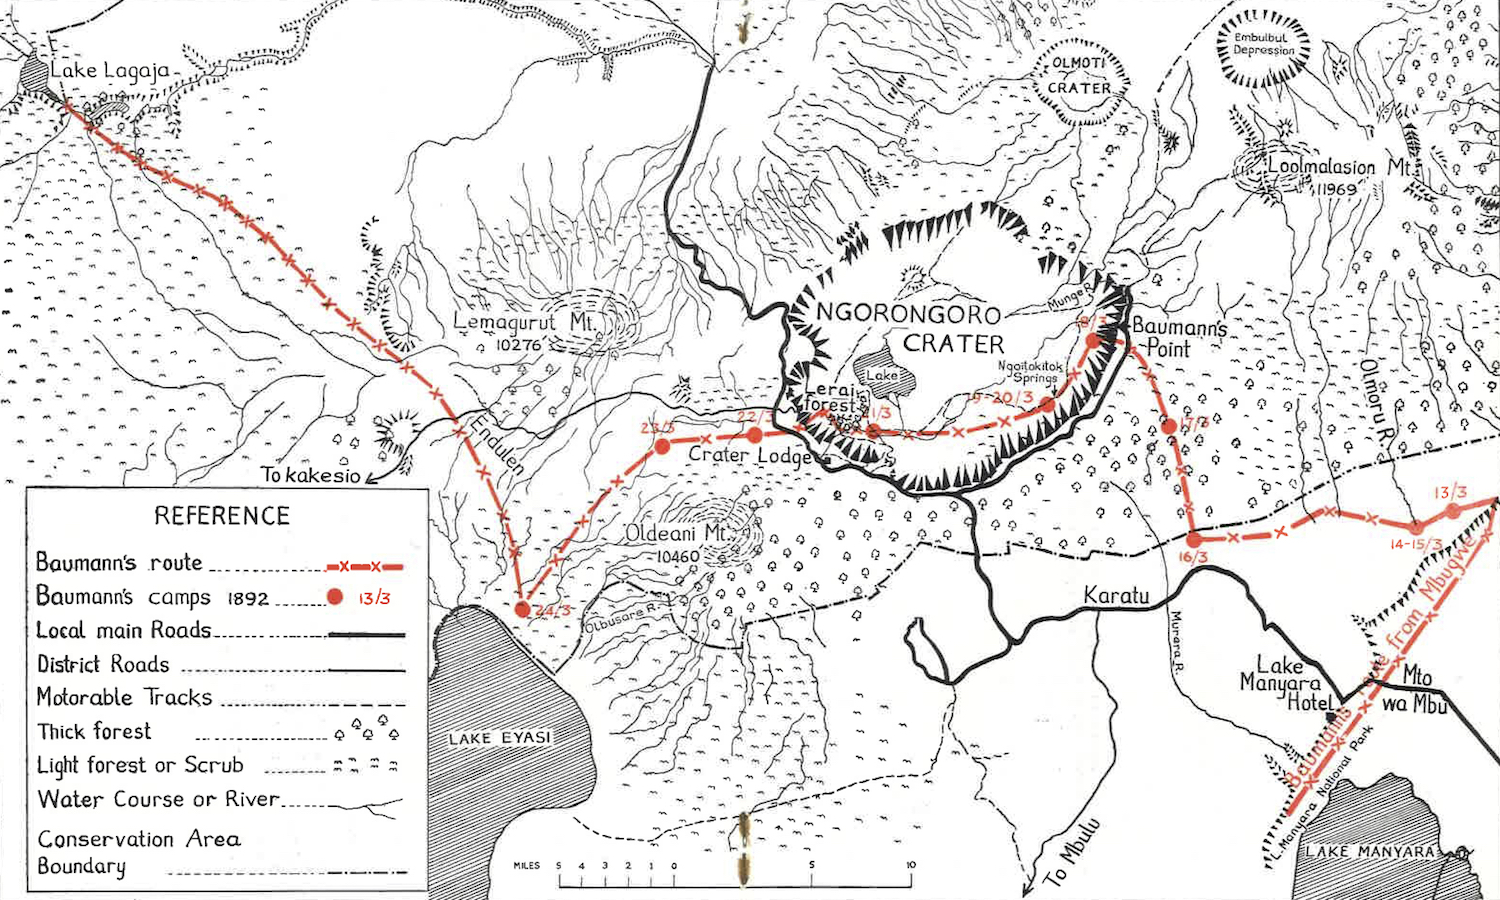 This map shows the route of Oskar Baumann through Ngorongoro Crater. His historic journey was taken 126 years ago this month and is marked in red. The graphic is drawn from a reprint (and translation) of Baumann's journey published as Ngorongoro's First Visitor (1963:10-11).